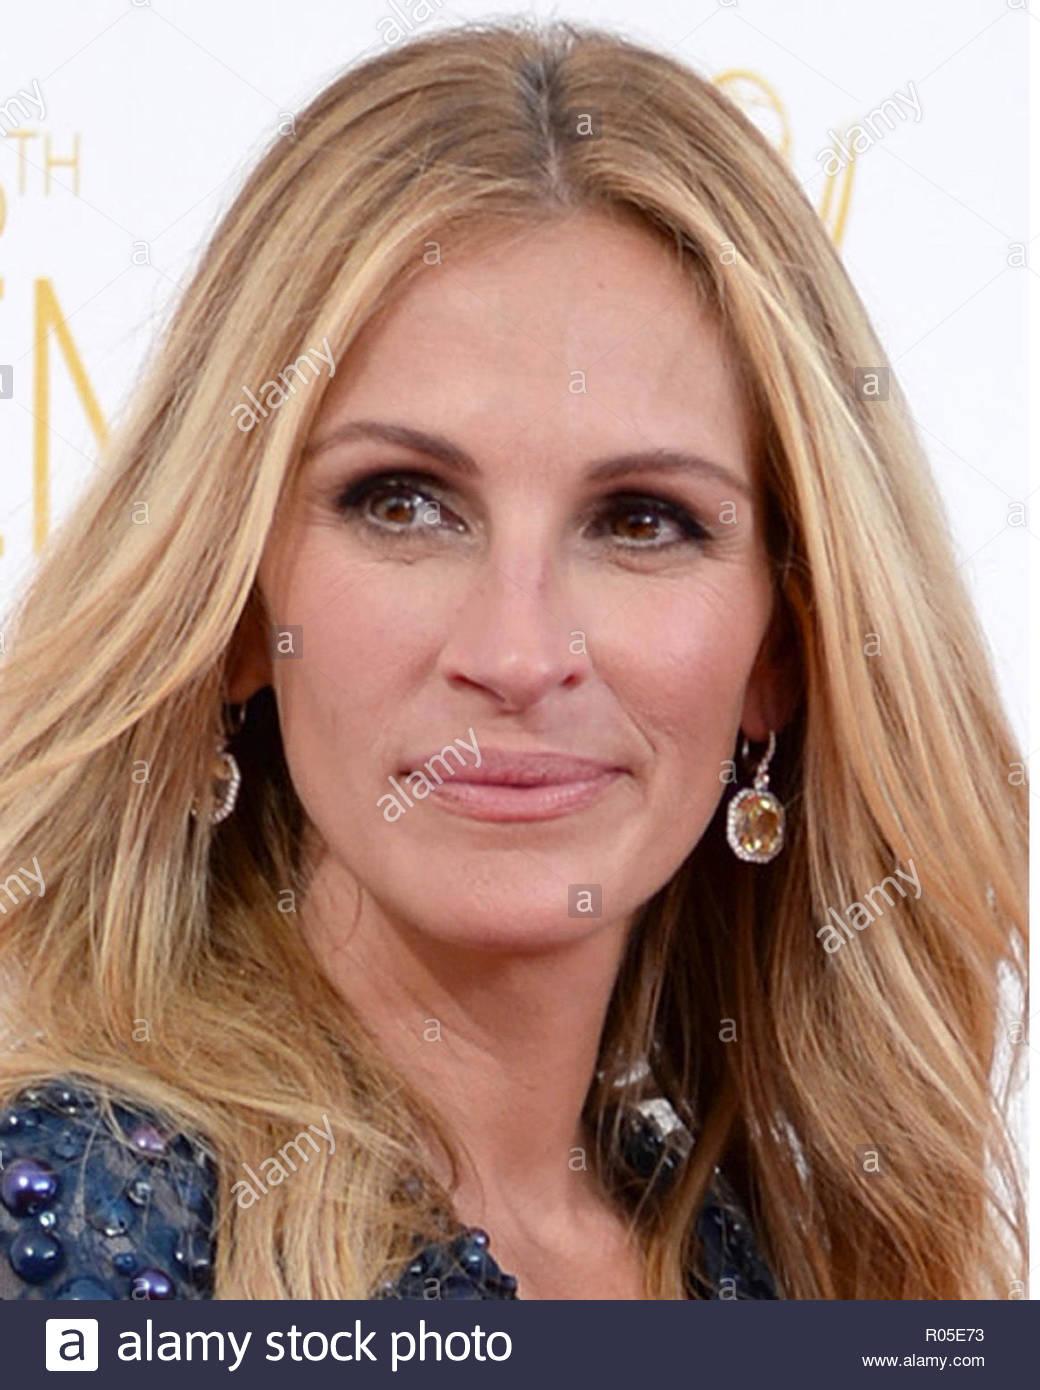 Julia roberts who is she dating. early warning signs of dating abuse.